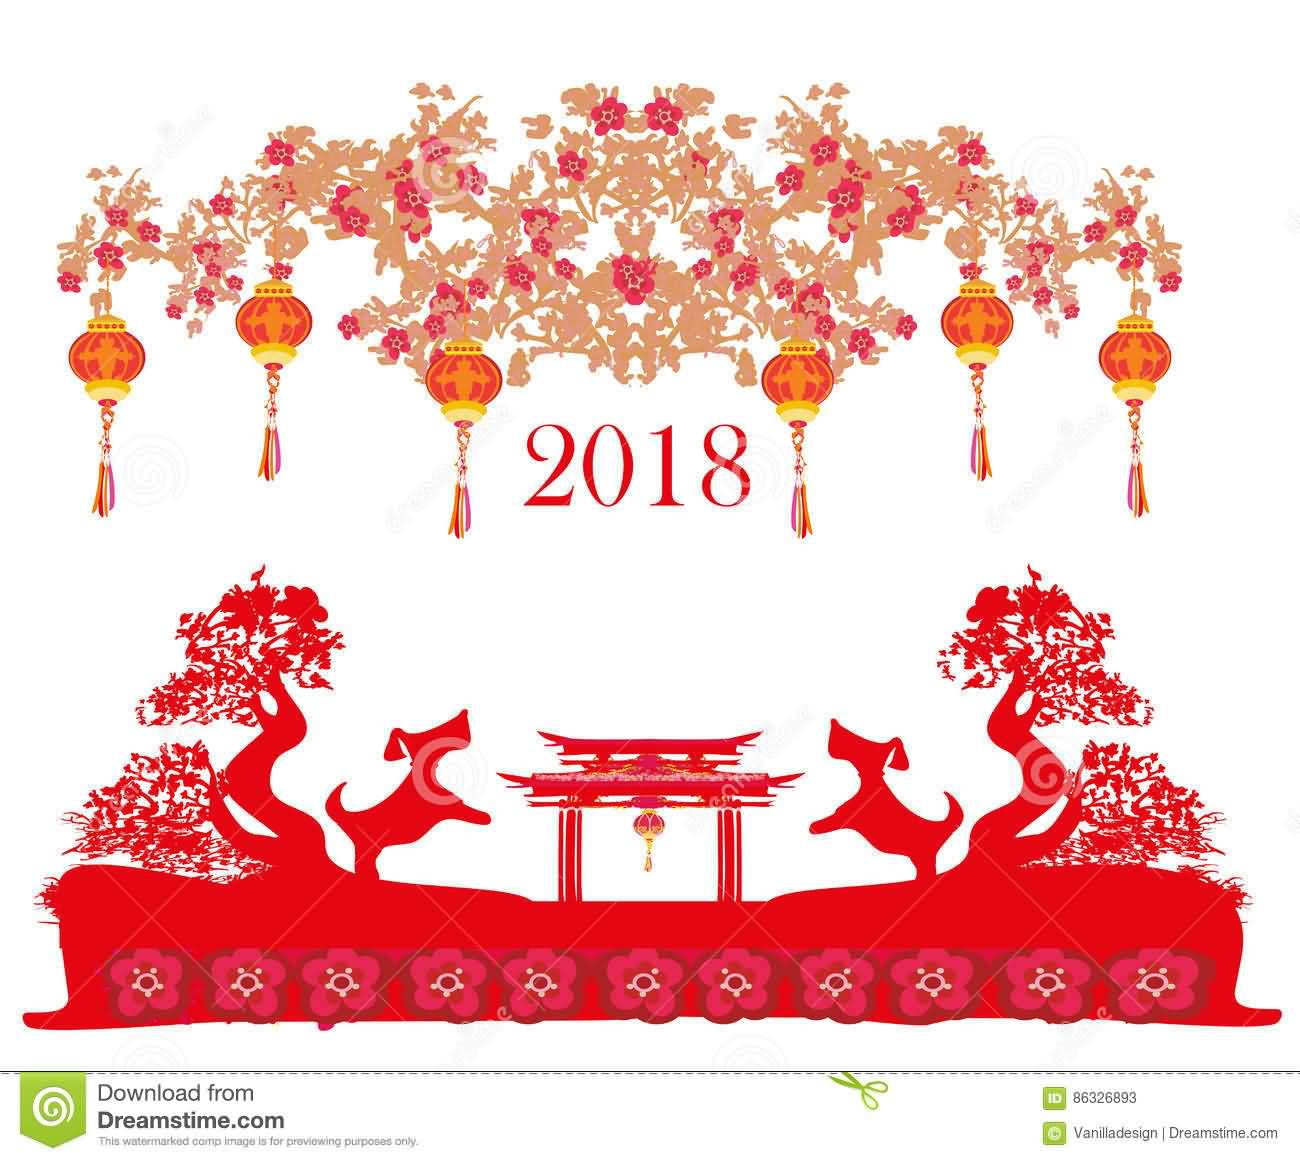 Happy Chinese New Year 2018 Cards Image Picture Photo Wallpaper 04